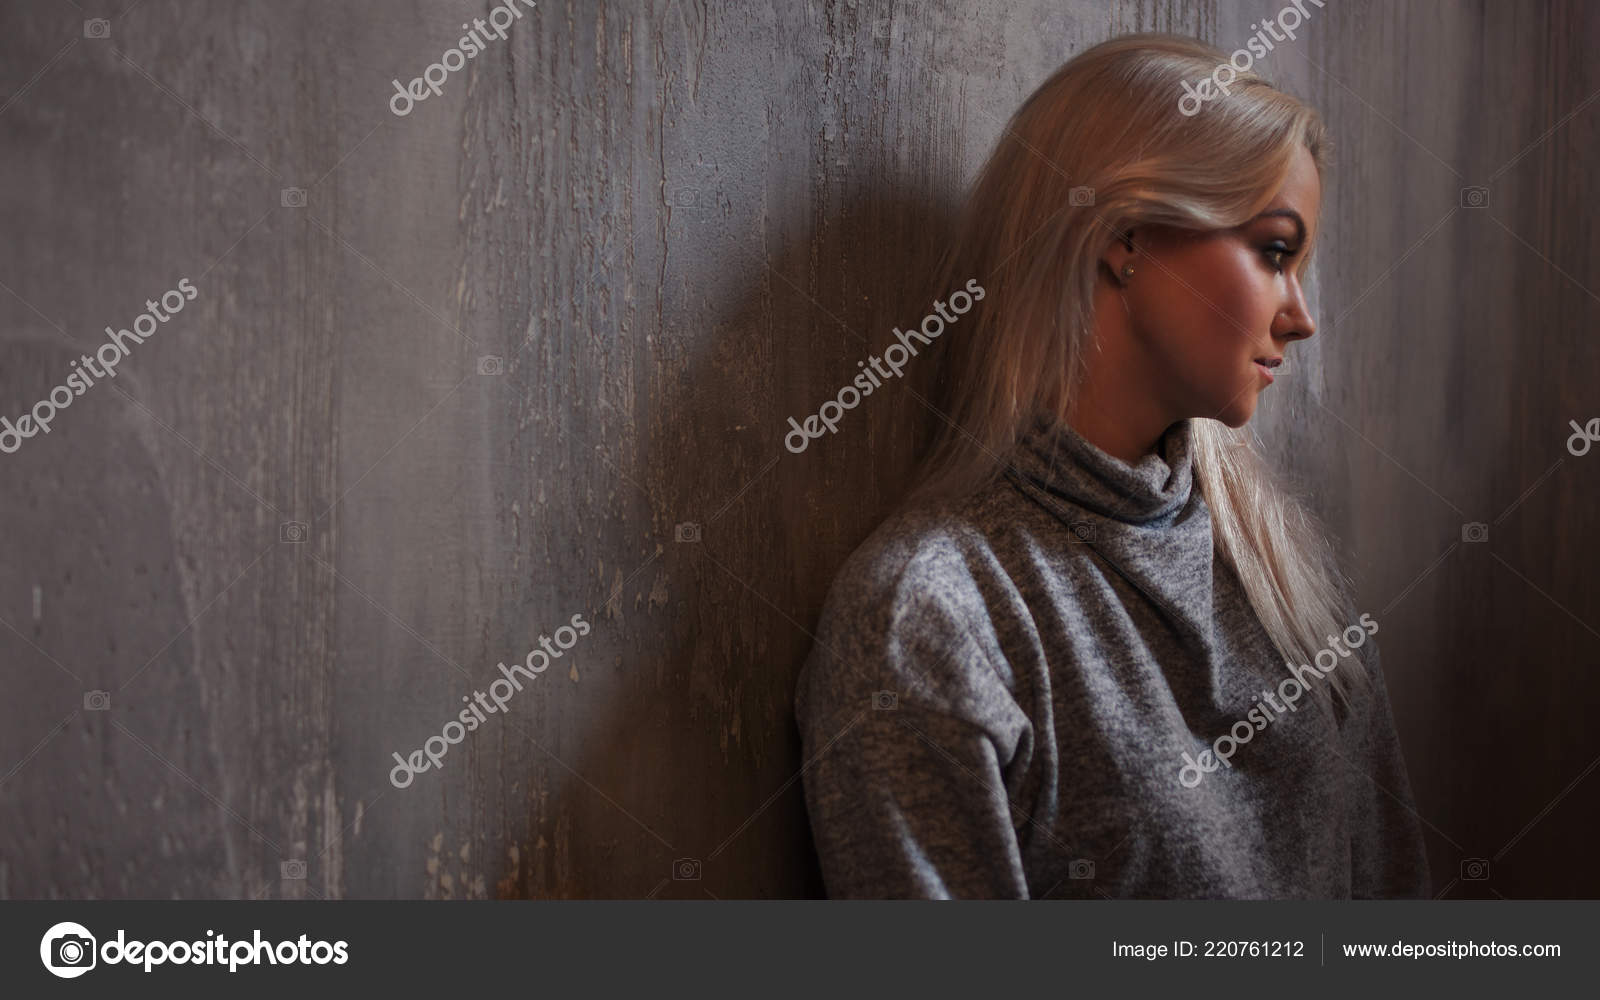 Pictures Sadness And Depression Depressed Woman Blonde Girl Sitting On The Floor Sadness And Depression Stock Photo C Kriscole 220761212